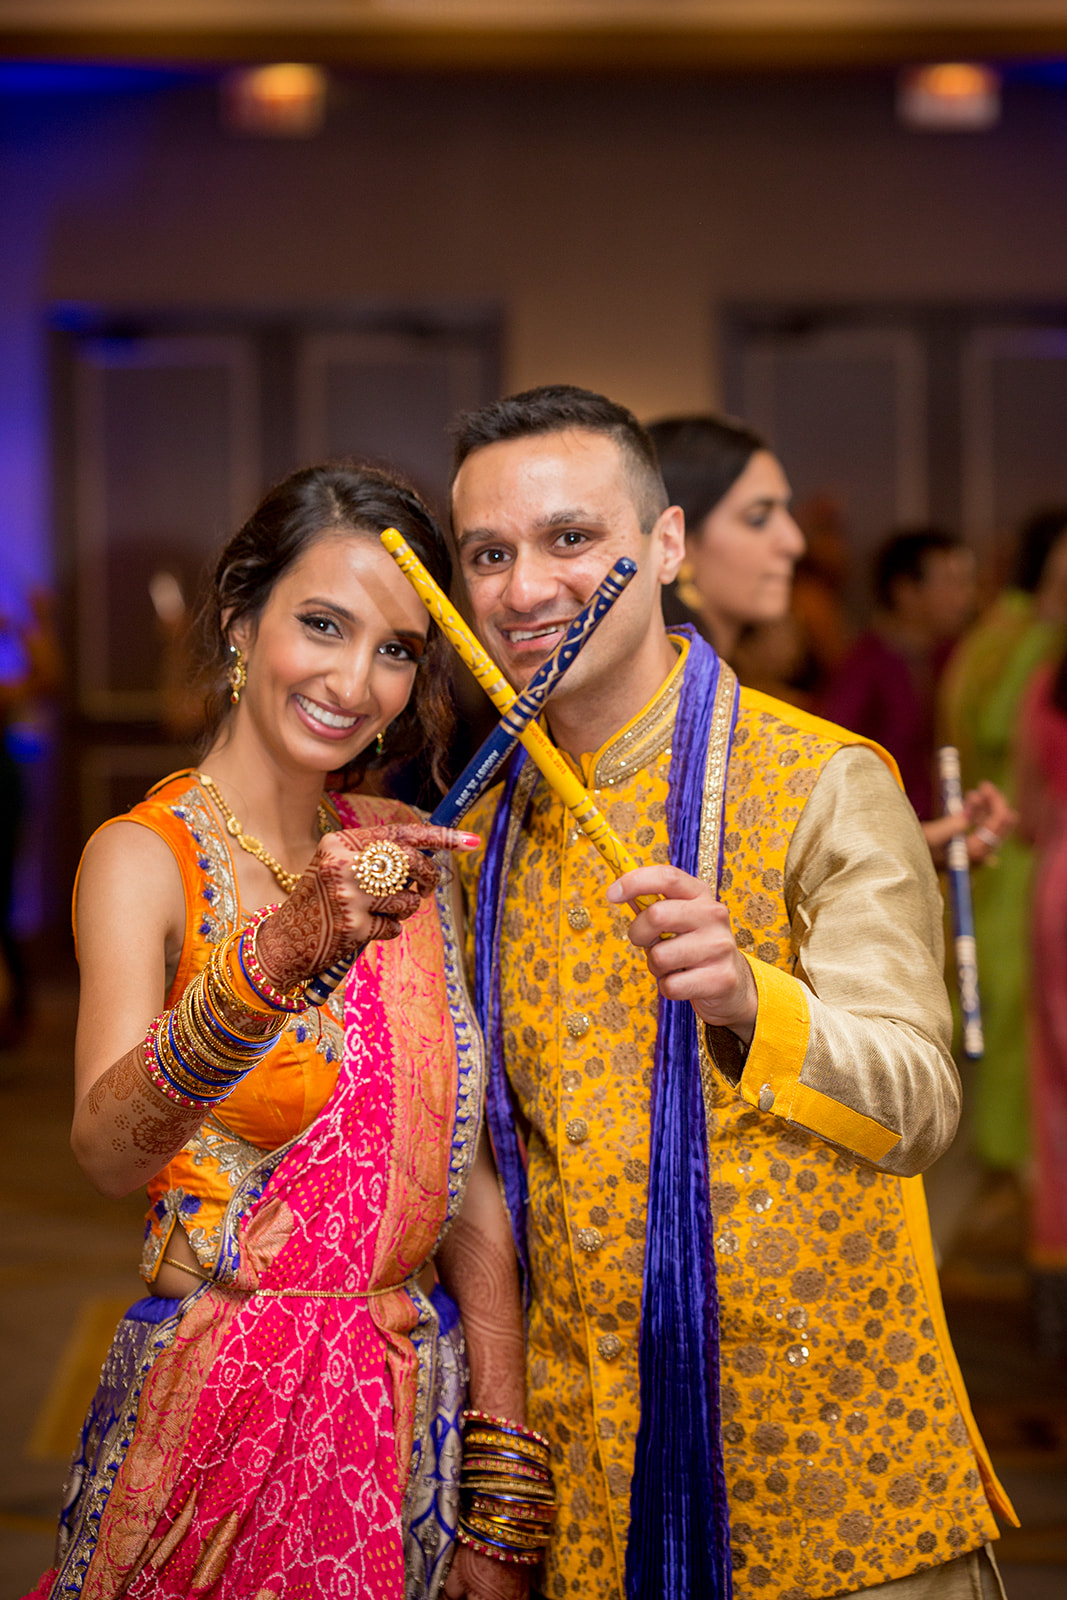 Le Cape Weddings - Monica and Pratik - Sangeet 00494.jpg